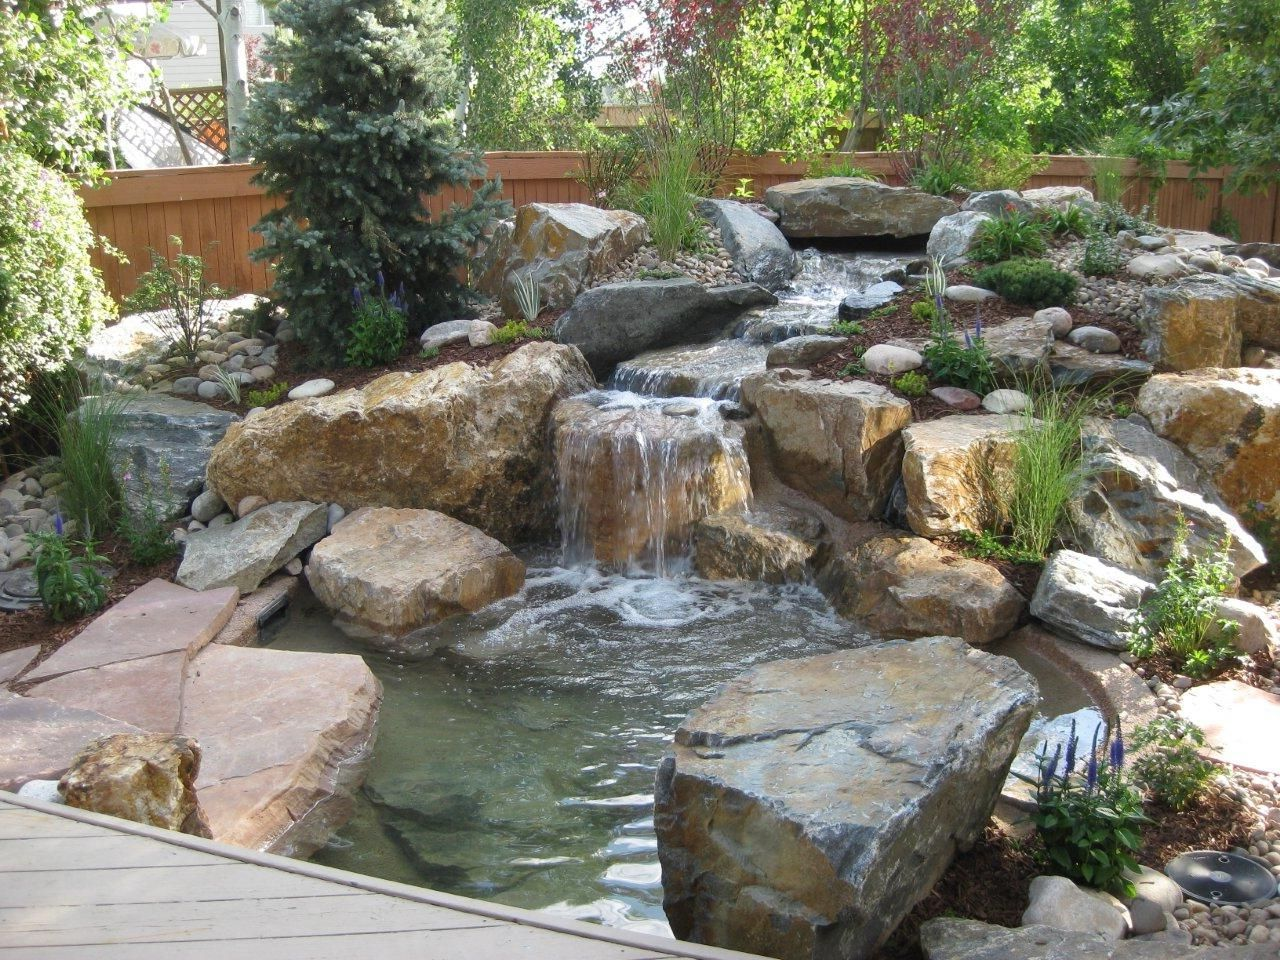 Backyard water features in japanese garden concept for Garden designs with water features